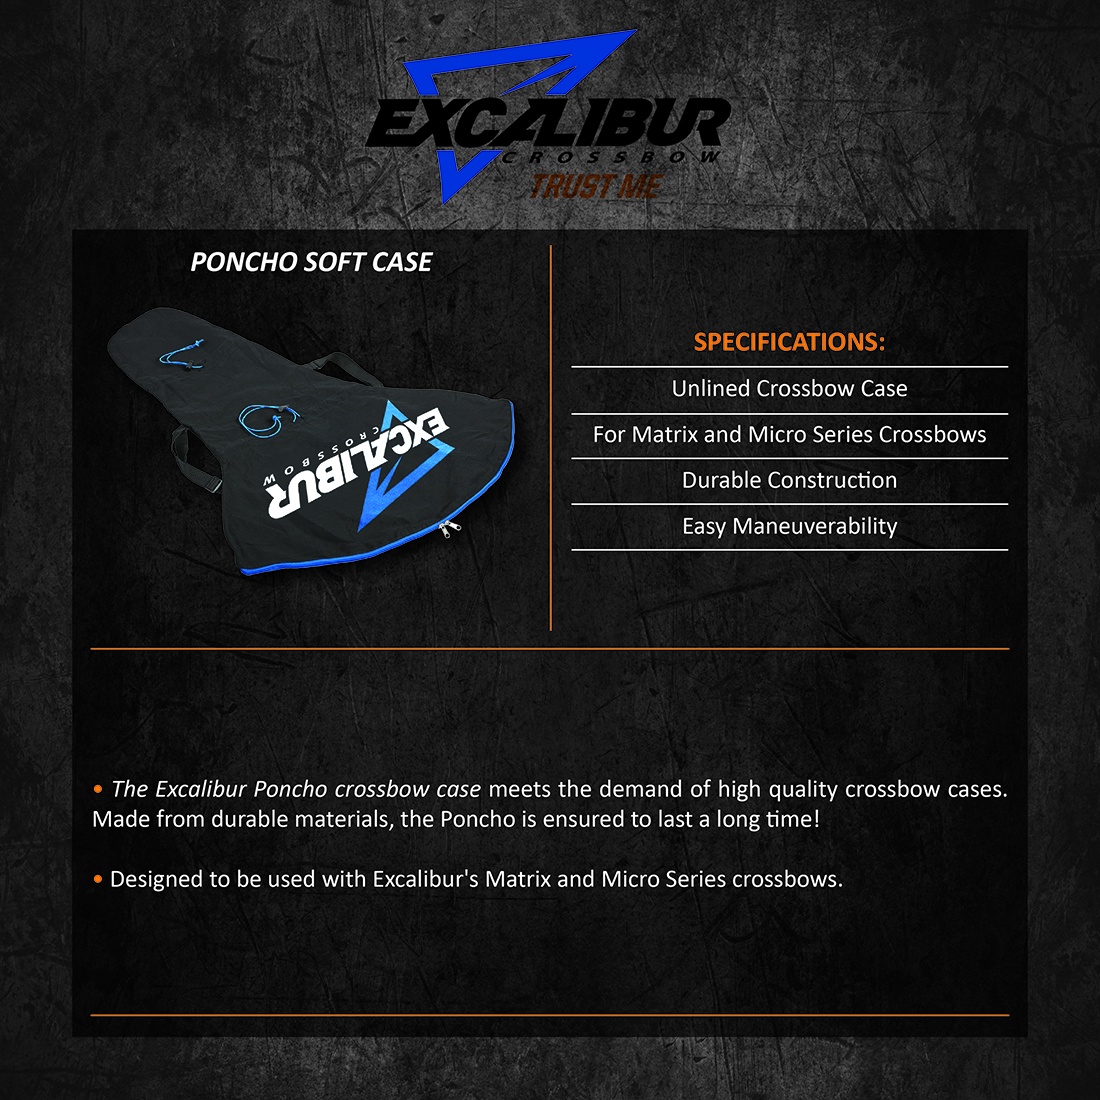 Excalibur_Poncho_Soft_Case_Product_Description